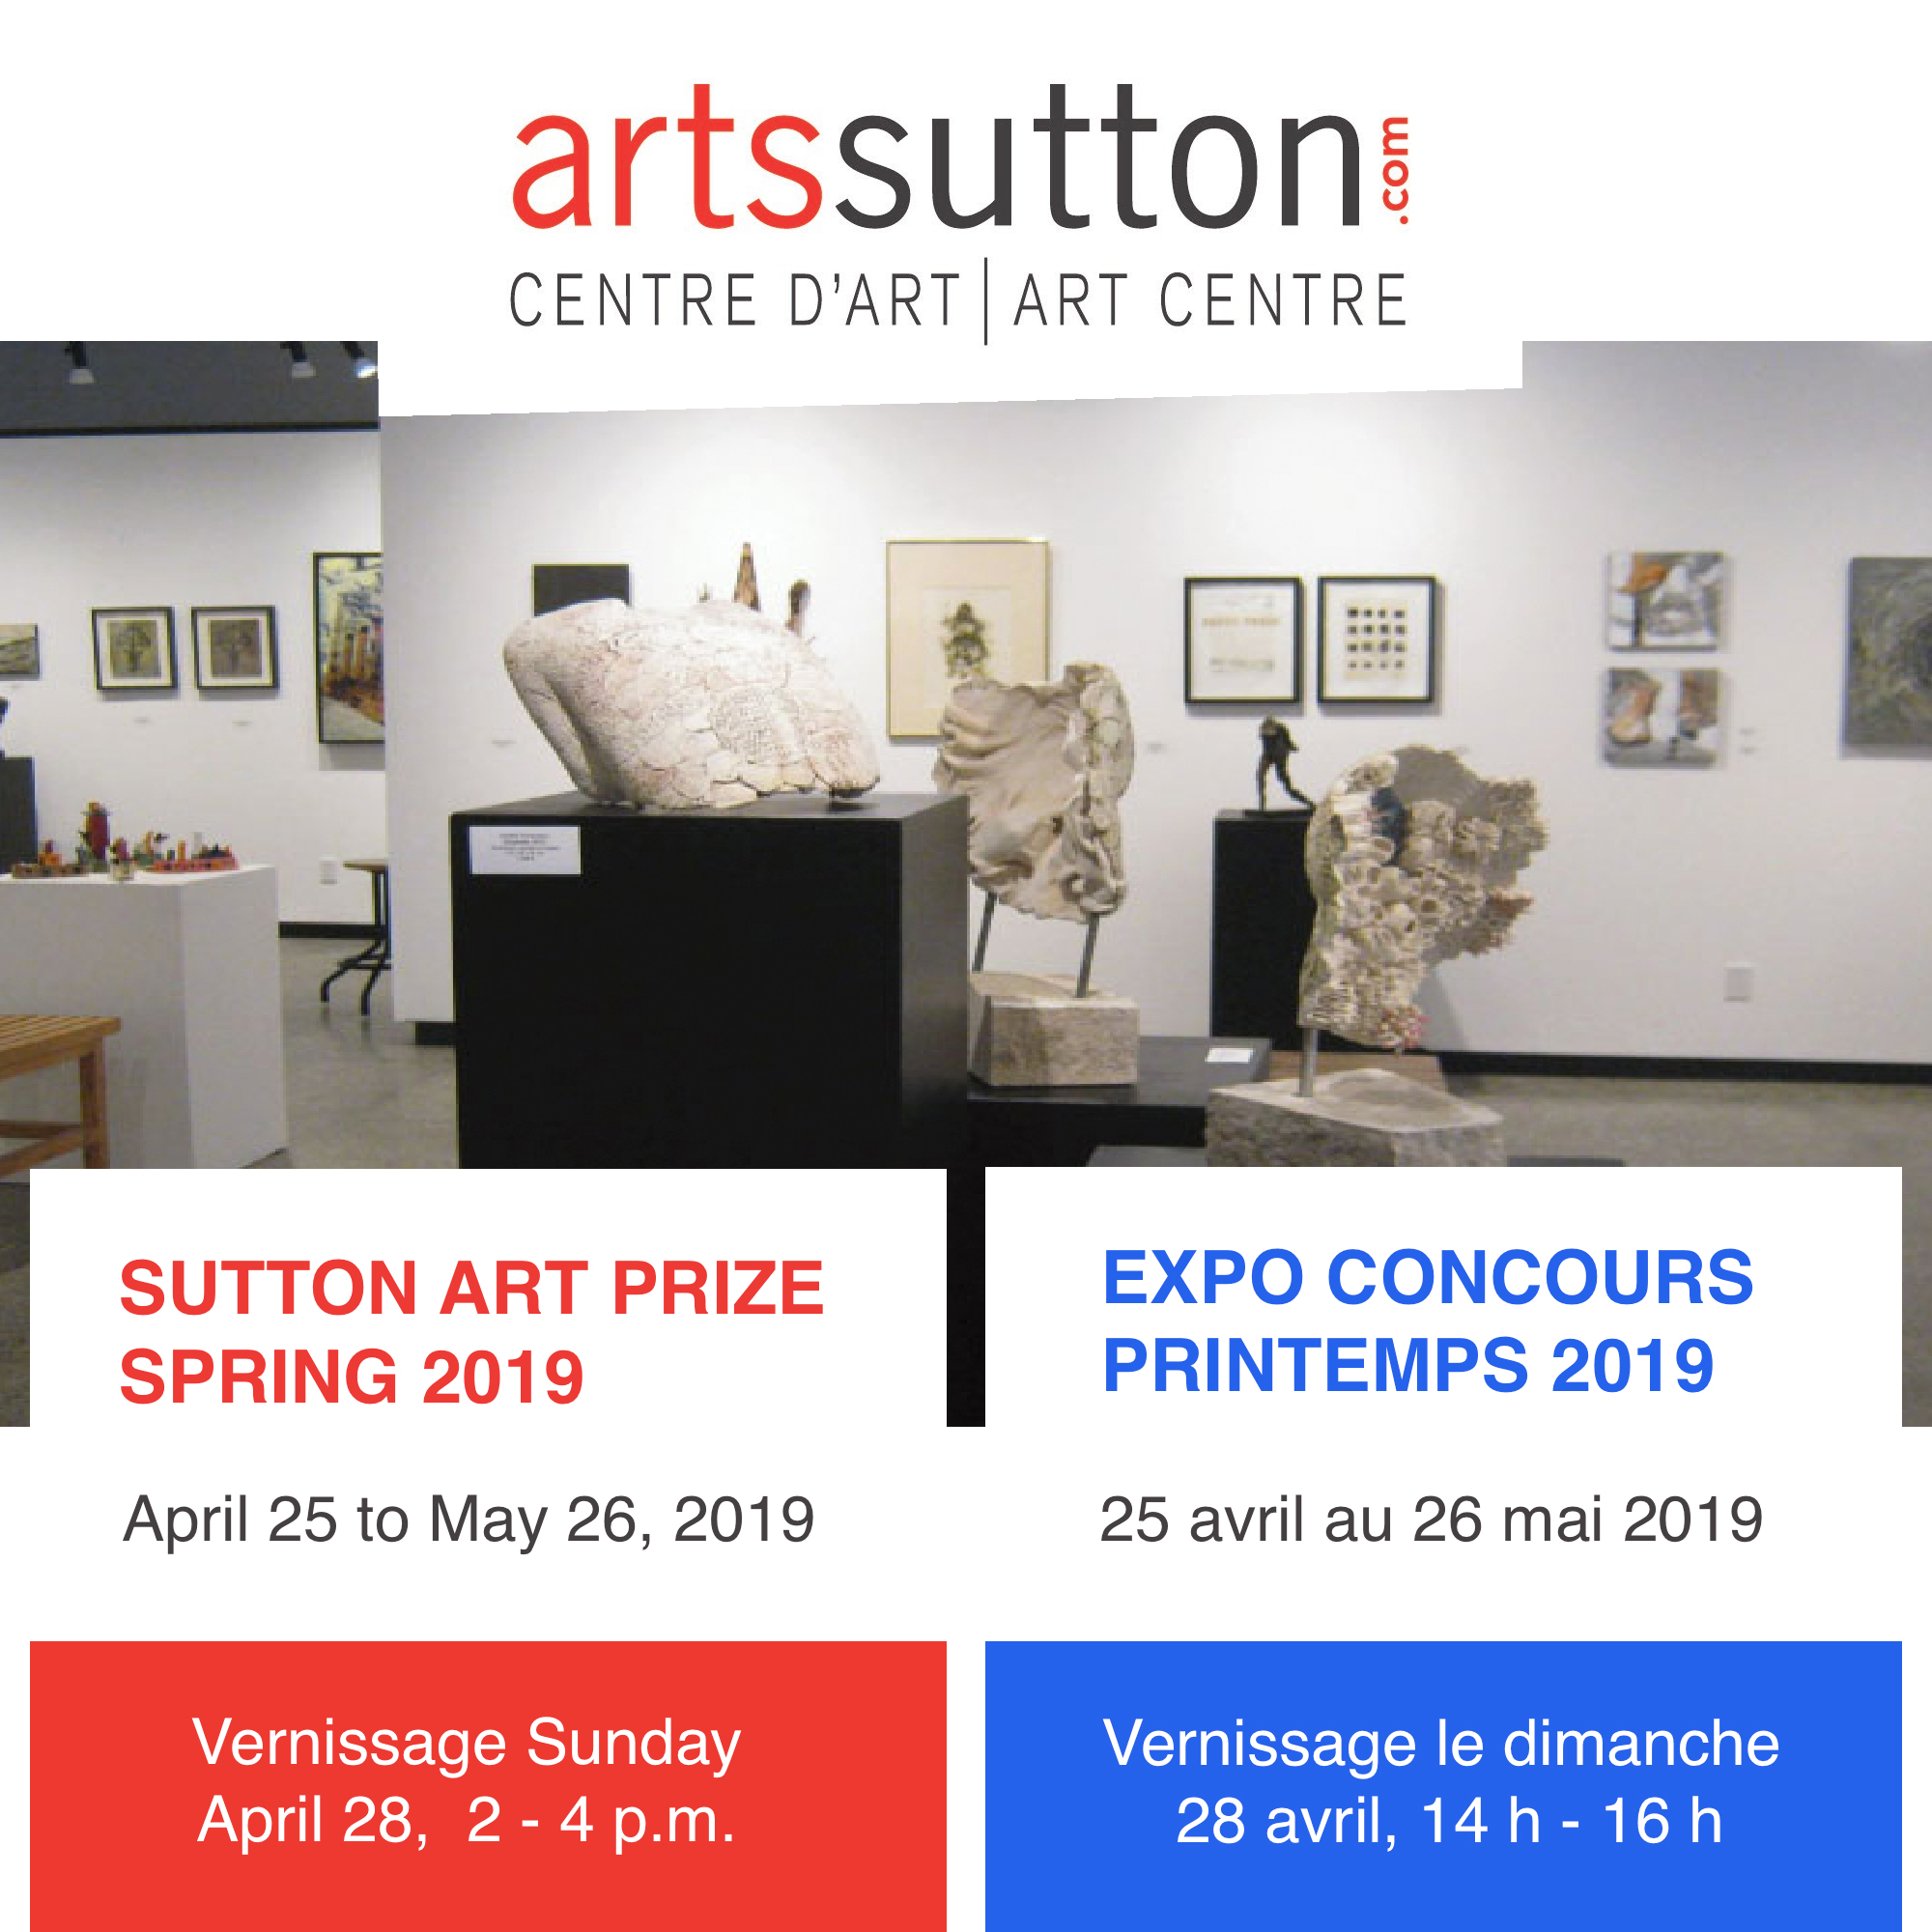 Sutton Art Prize Spring 2019